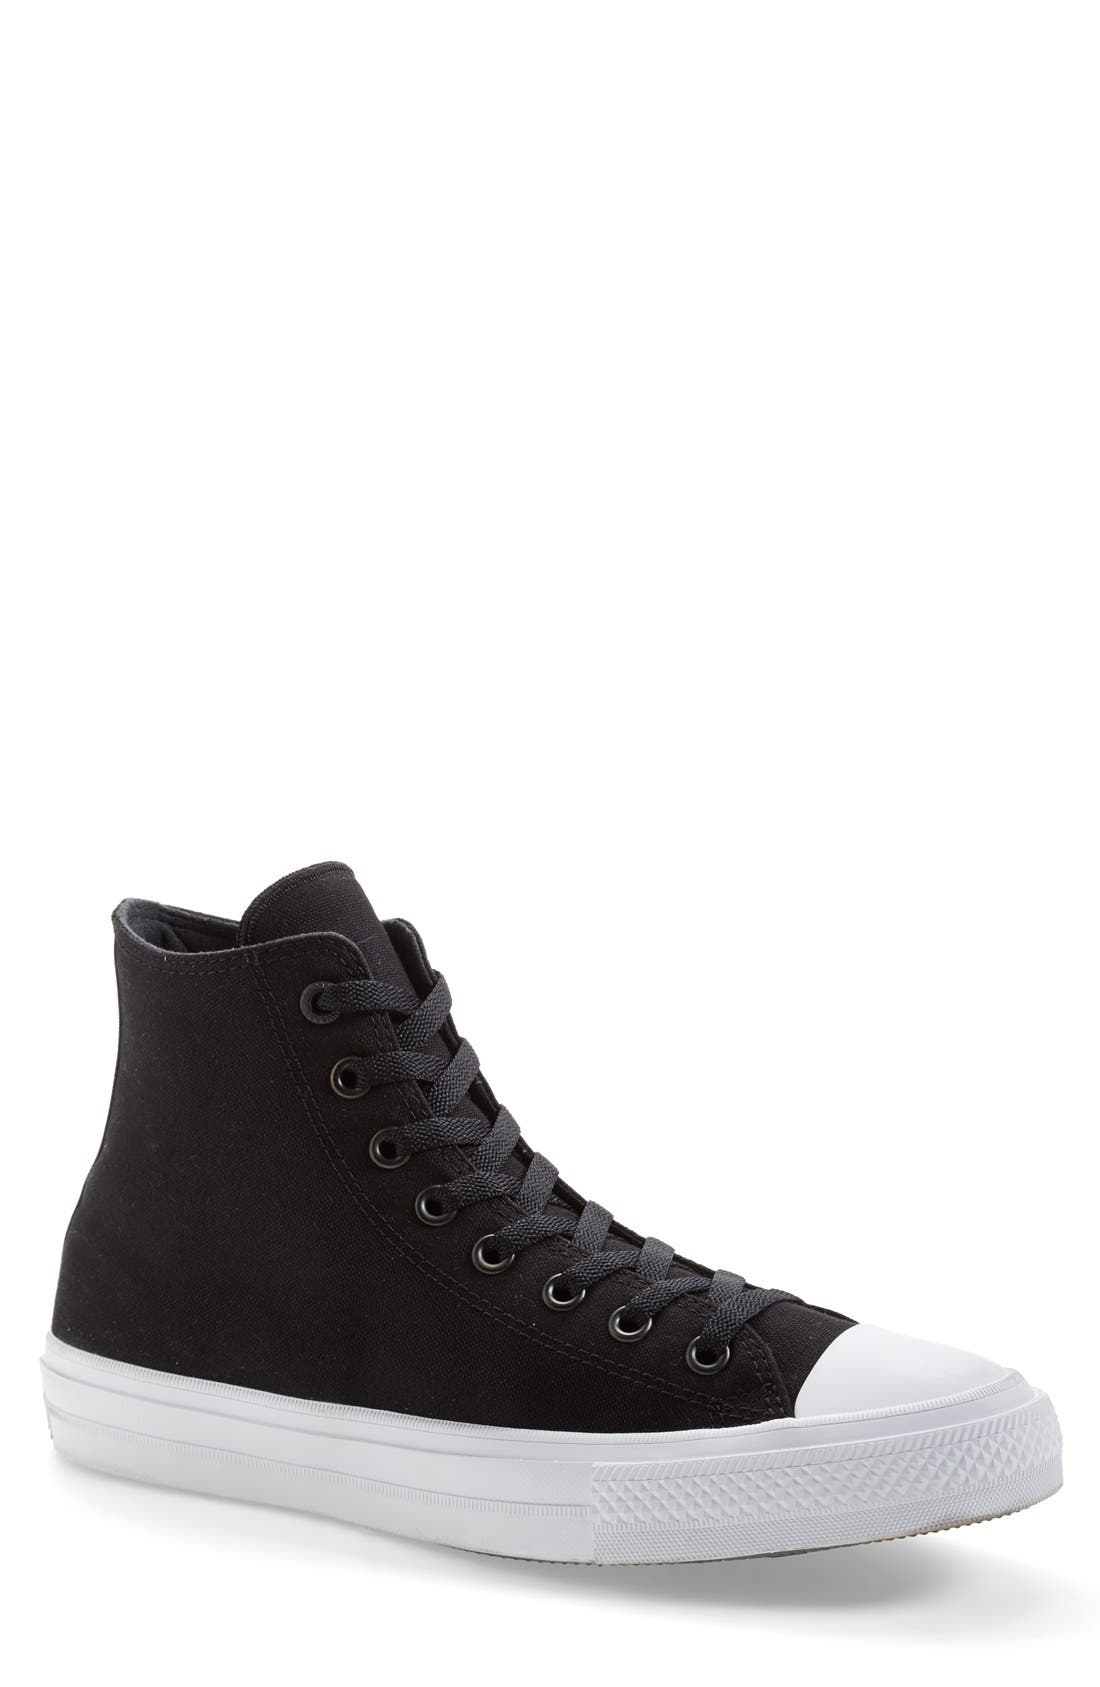 Chuck Taylor<sup>®</sup> All Star<sup>®</sup> Chuck II High Top Sneaker,                             Main thumbnail 1, color,                             Black/ White/ Navy Canvas